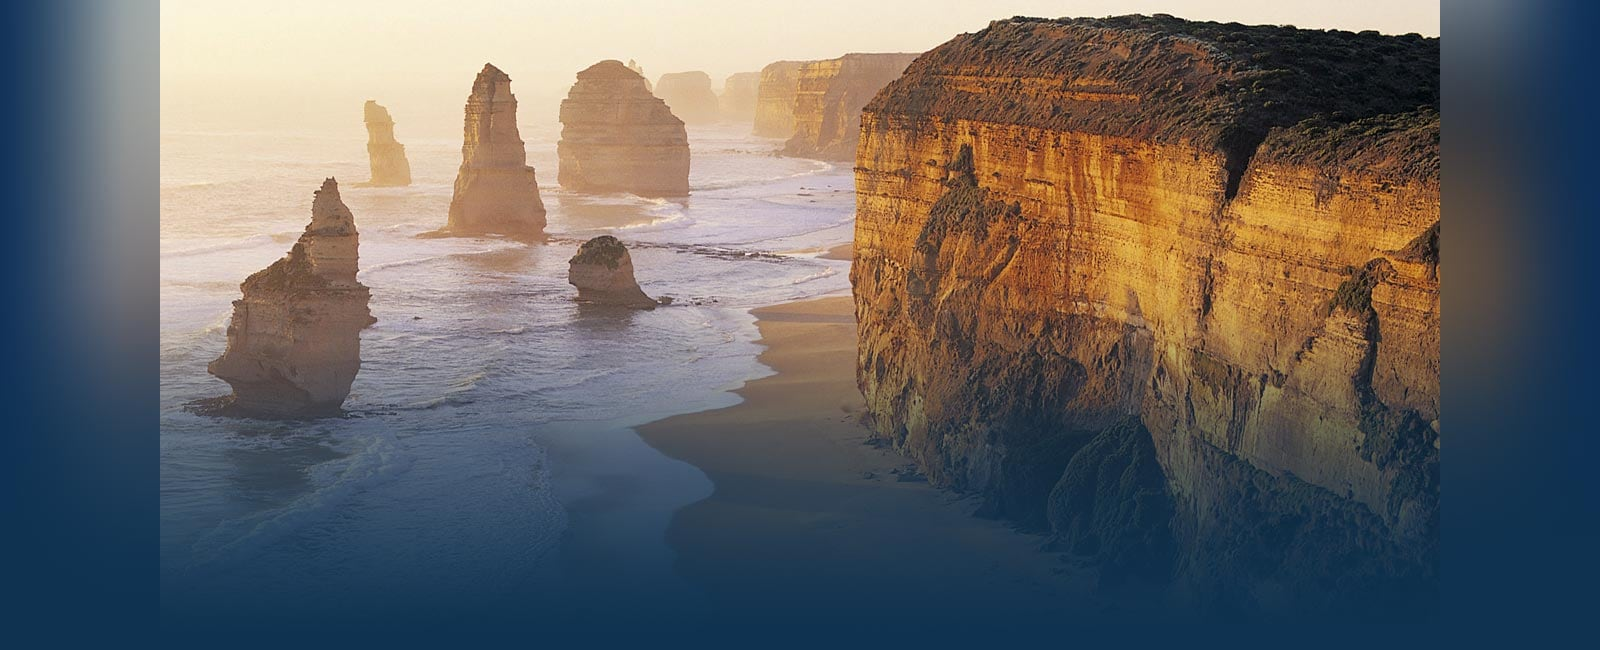 Australia shores with cliffs to the right